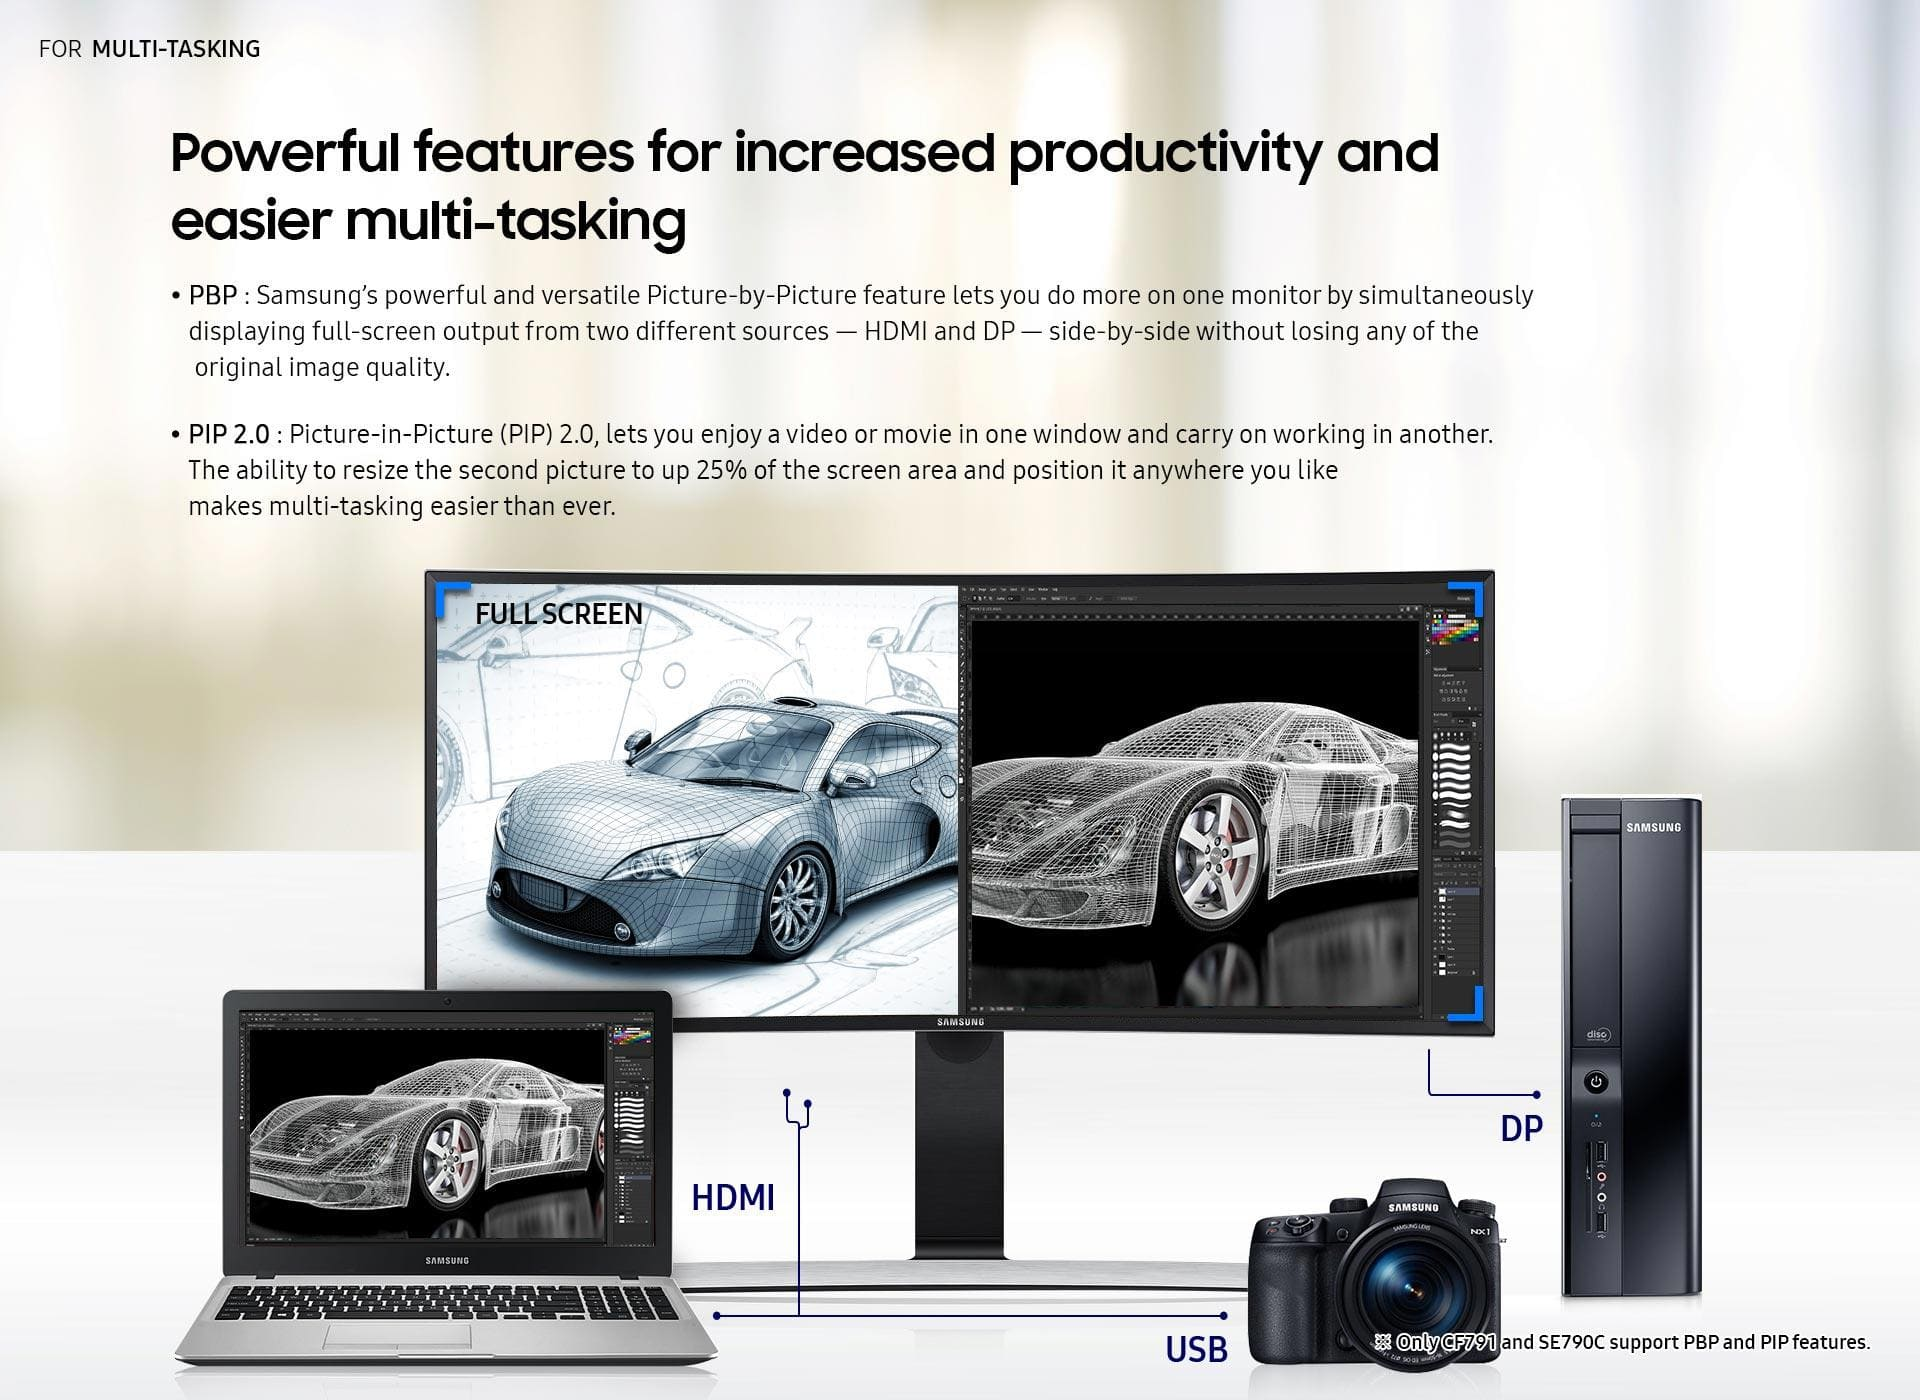 Powerful features for increased productivity and easier multi-tasking